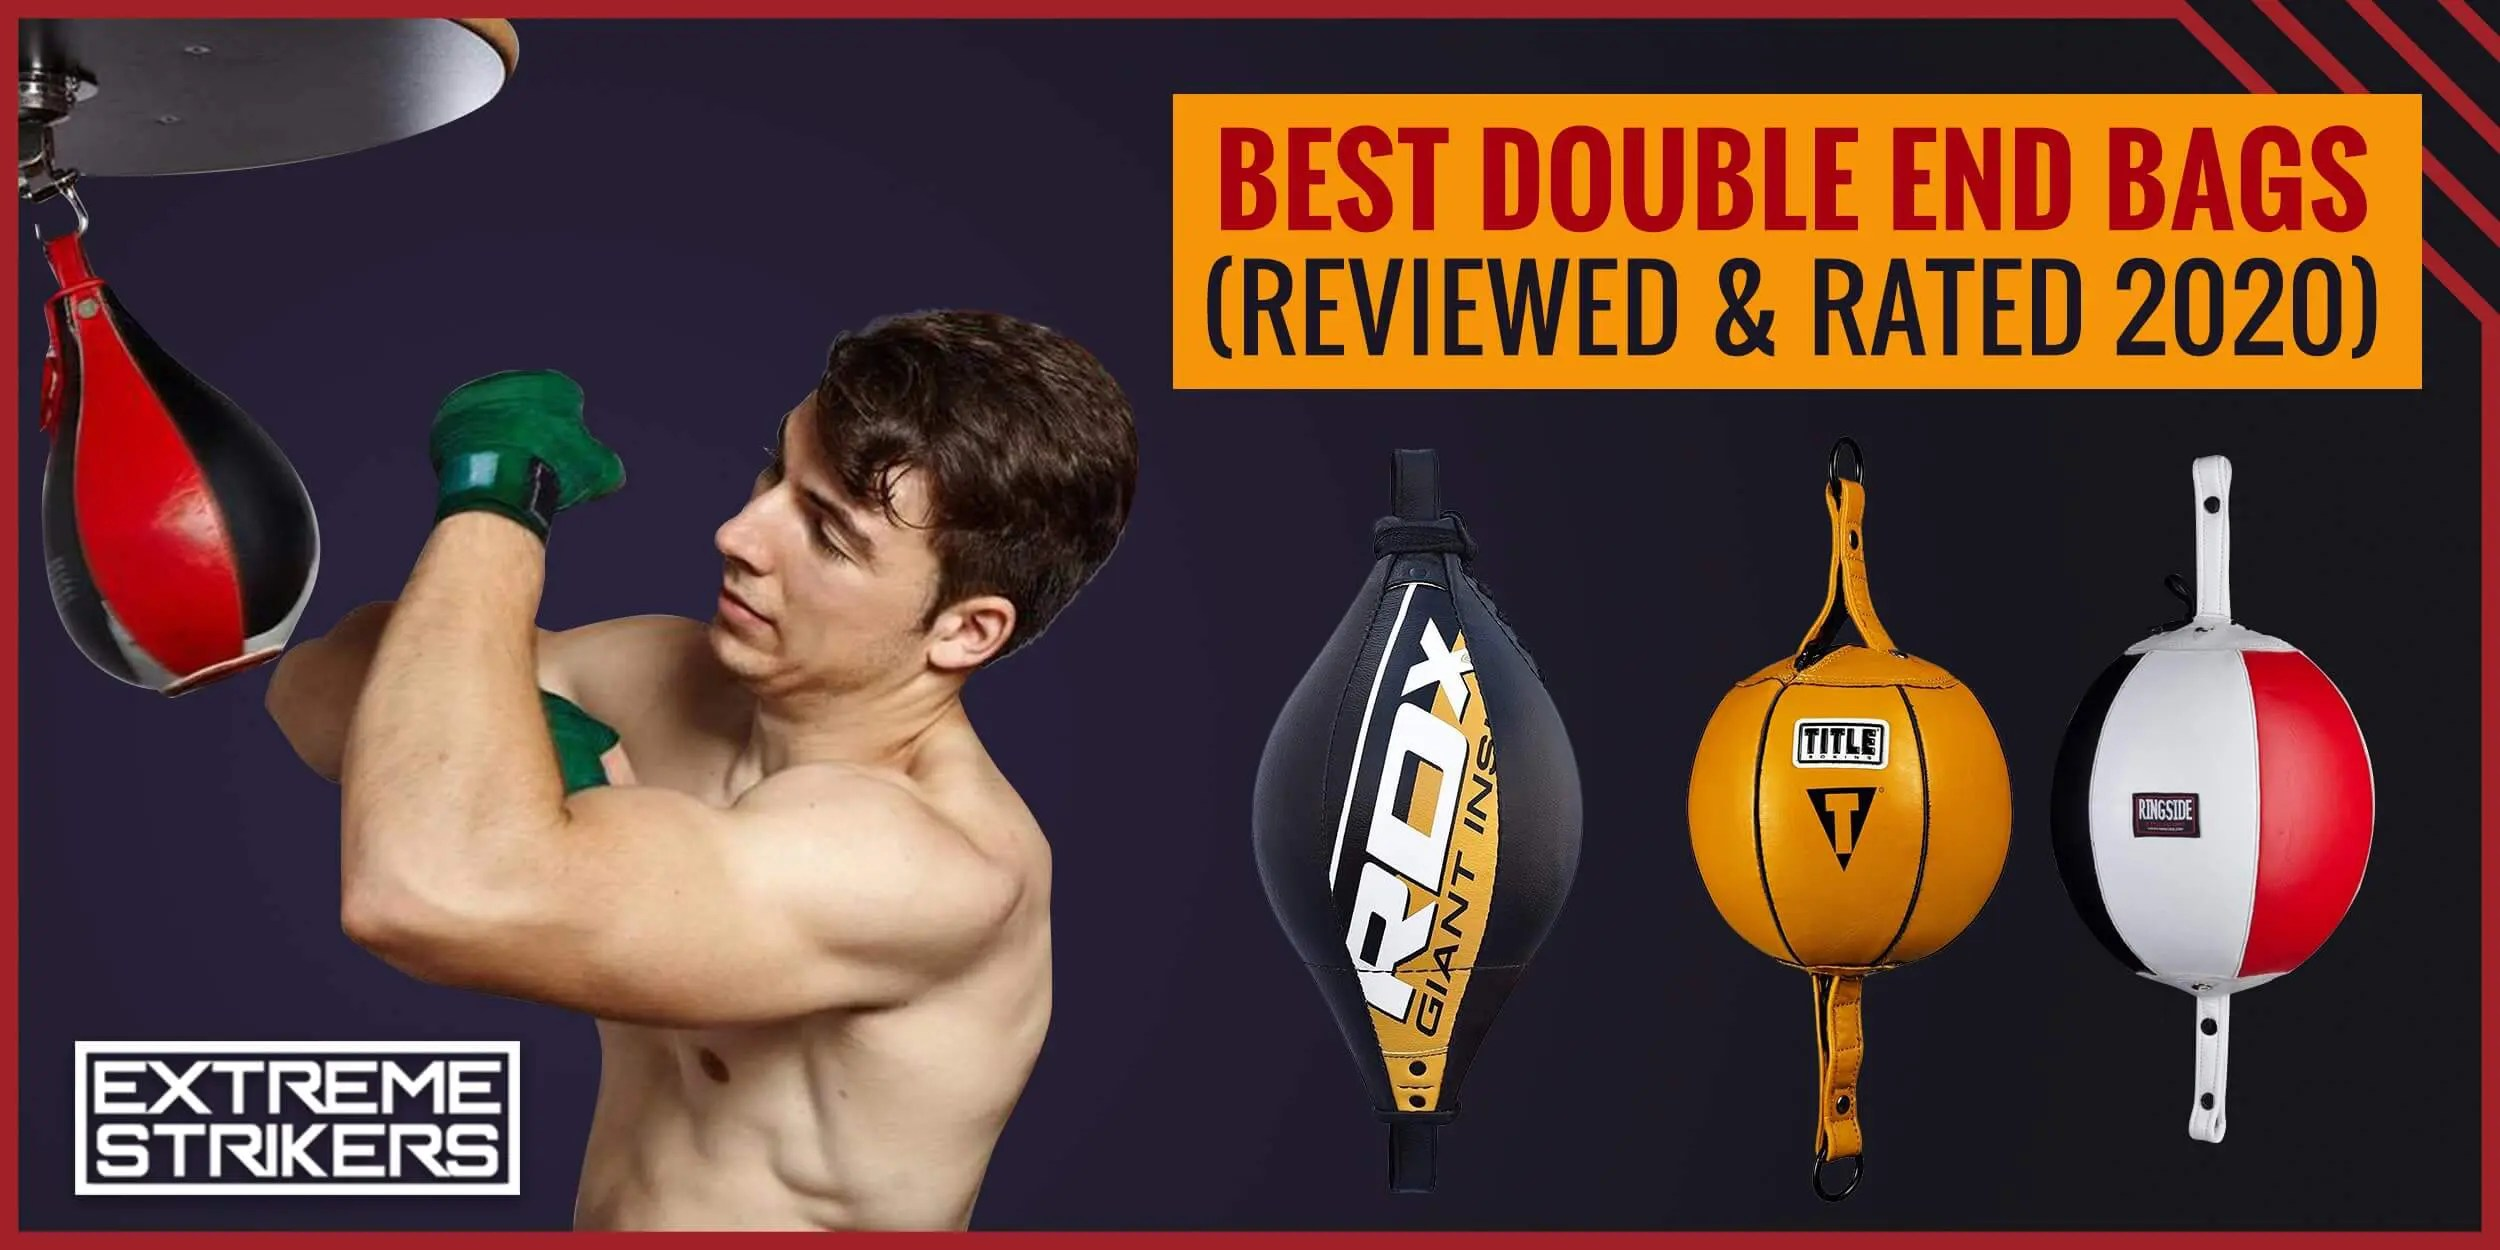 Best Double End Bags (REVIEWED & RATED 2020)